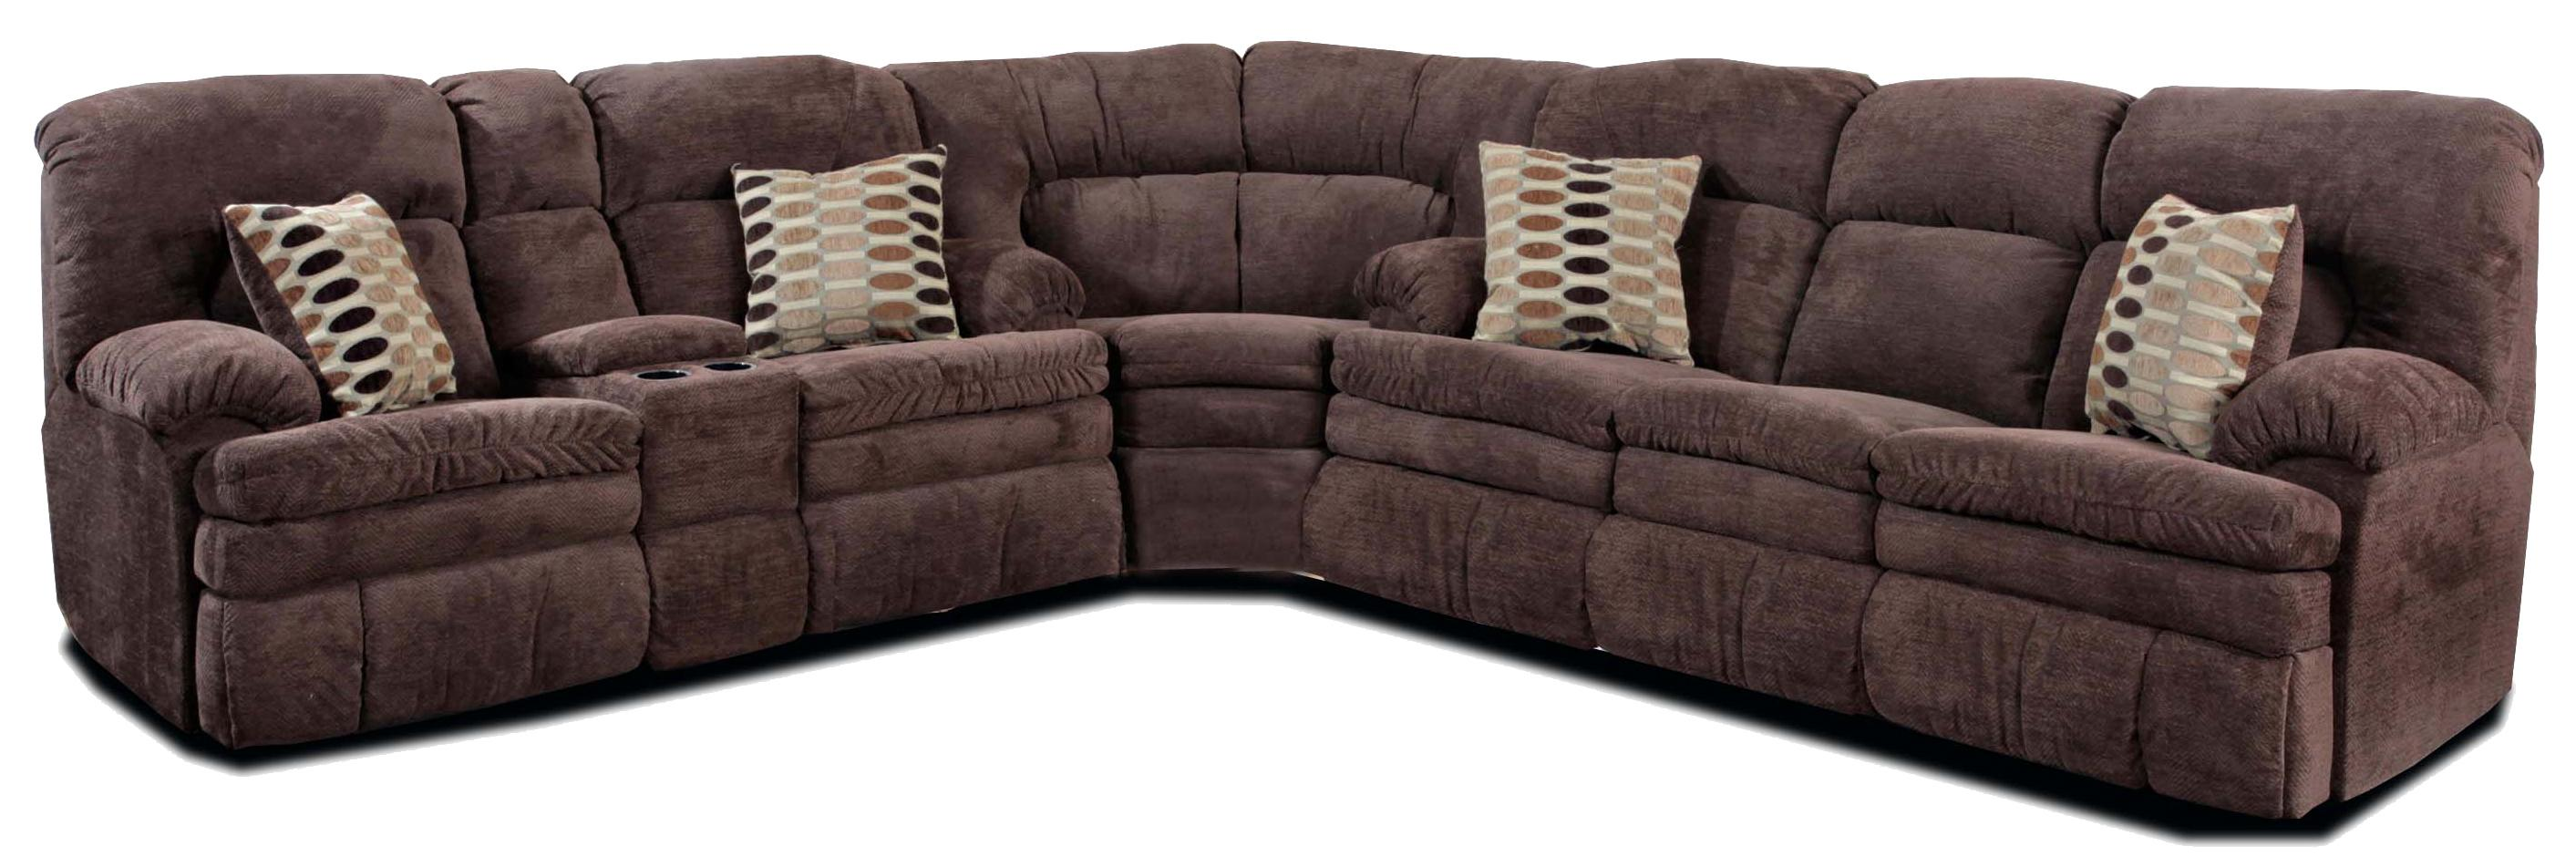 HomeStretch 103 Chocolate Series Reclining Sectional Sofa - Item Number: 103-22-22+00-22+30-22